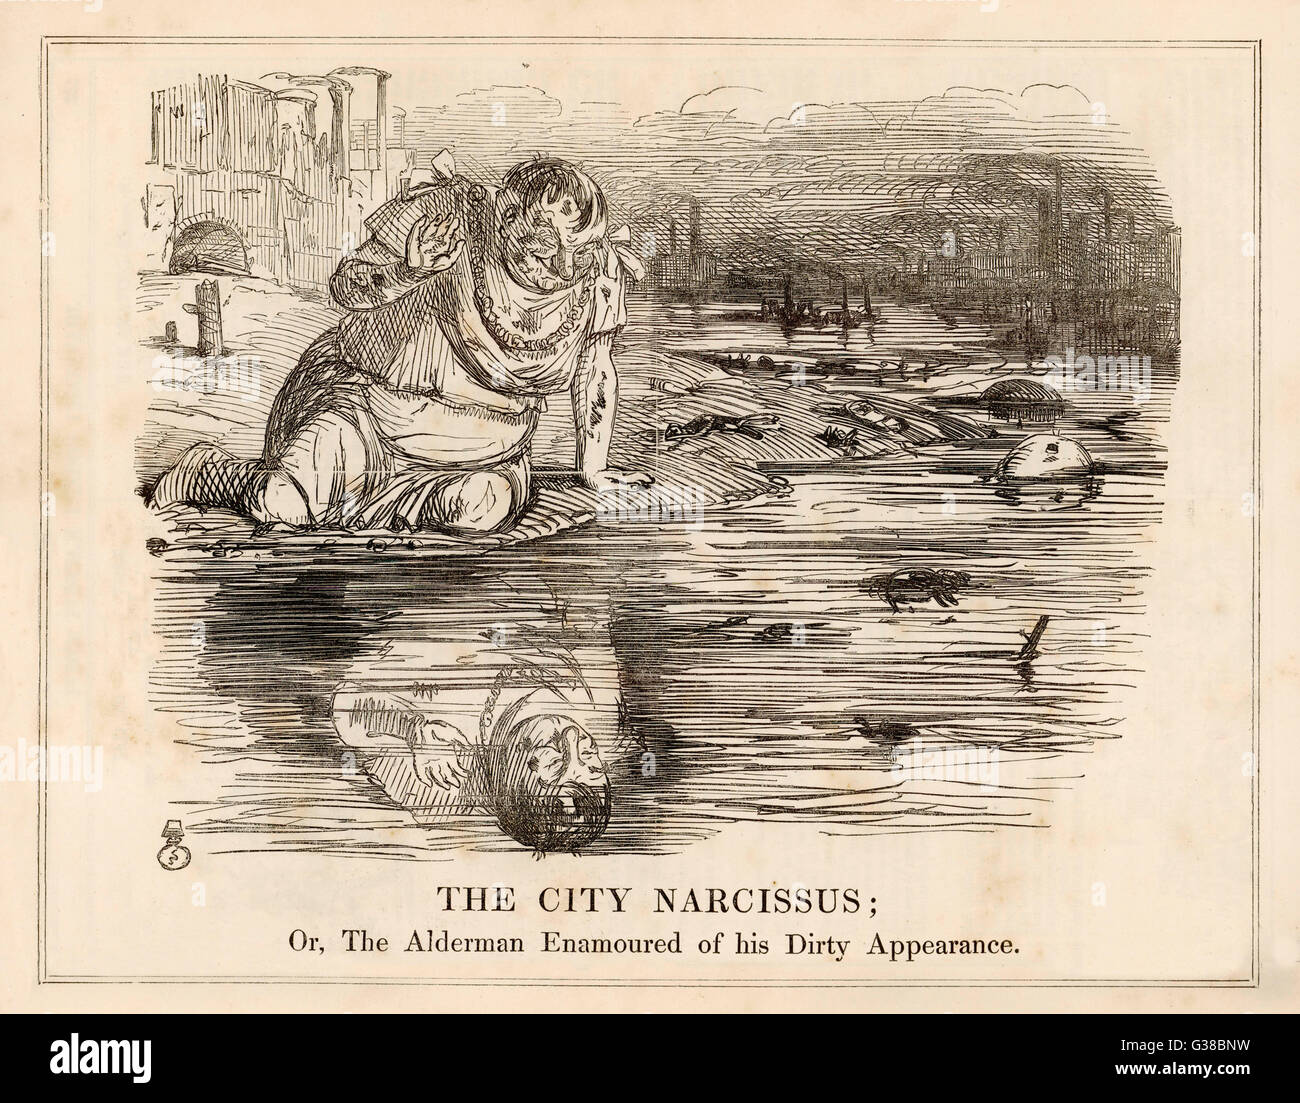 'THE CITY NARCISSUS' or, The Alderman Enamoured of  his Dirty Appearance - London's authorities are - Stock Image